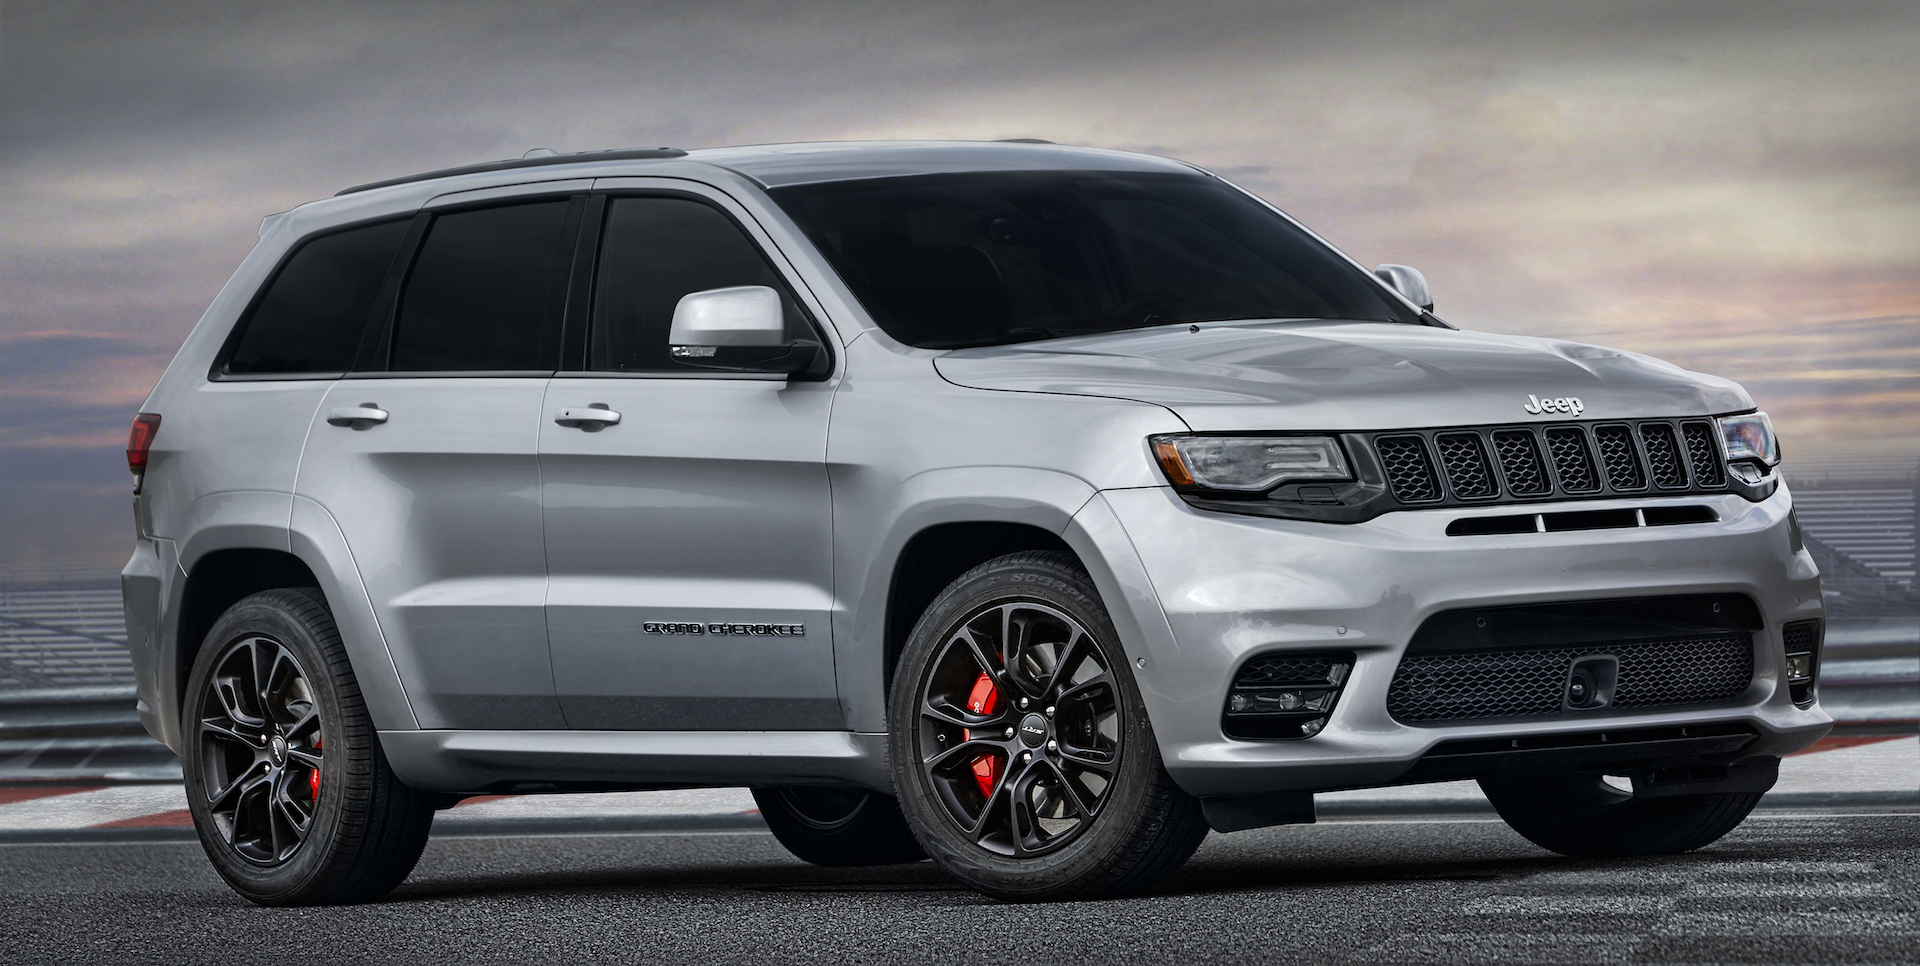 We Now Know What The Hellcat Powered Jeep Grand Cherokee